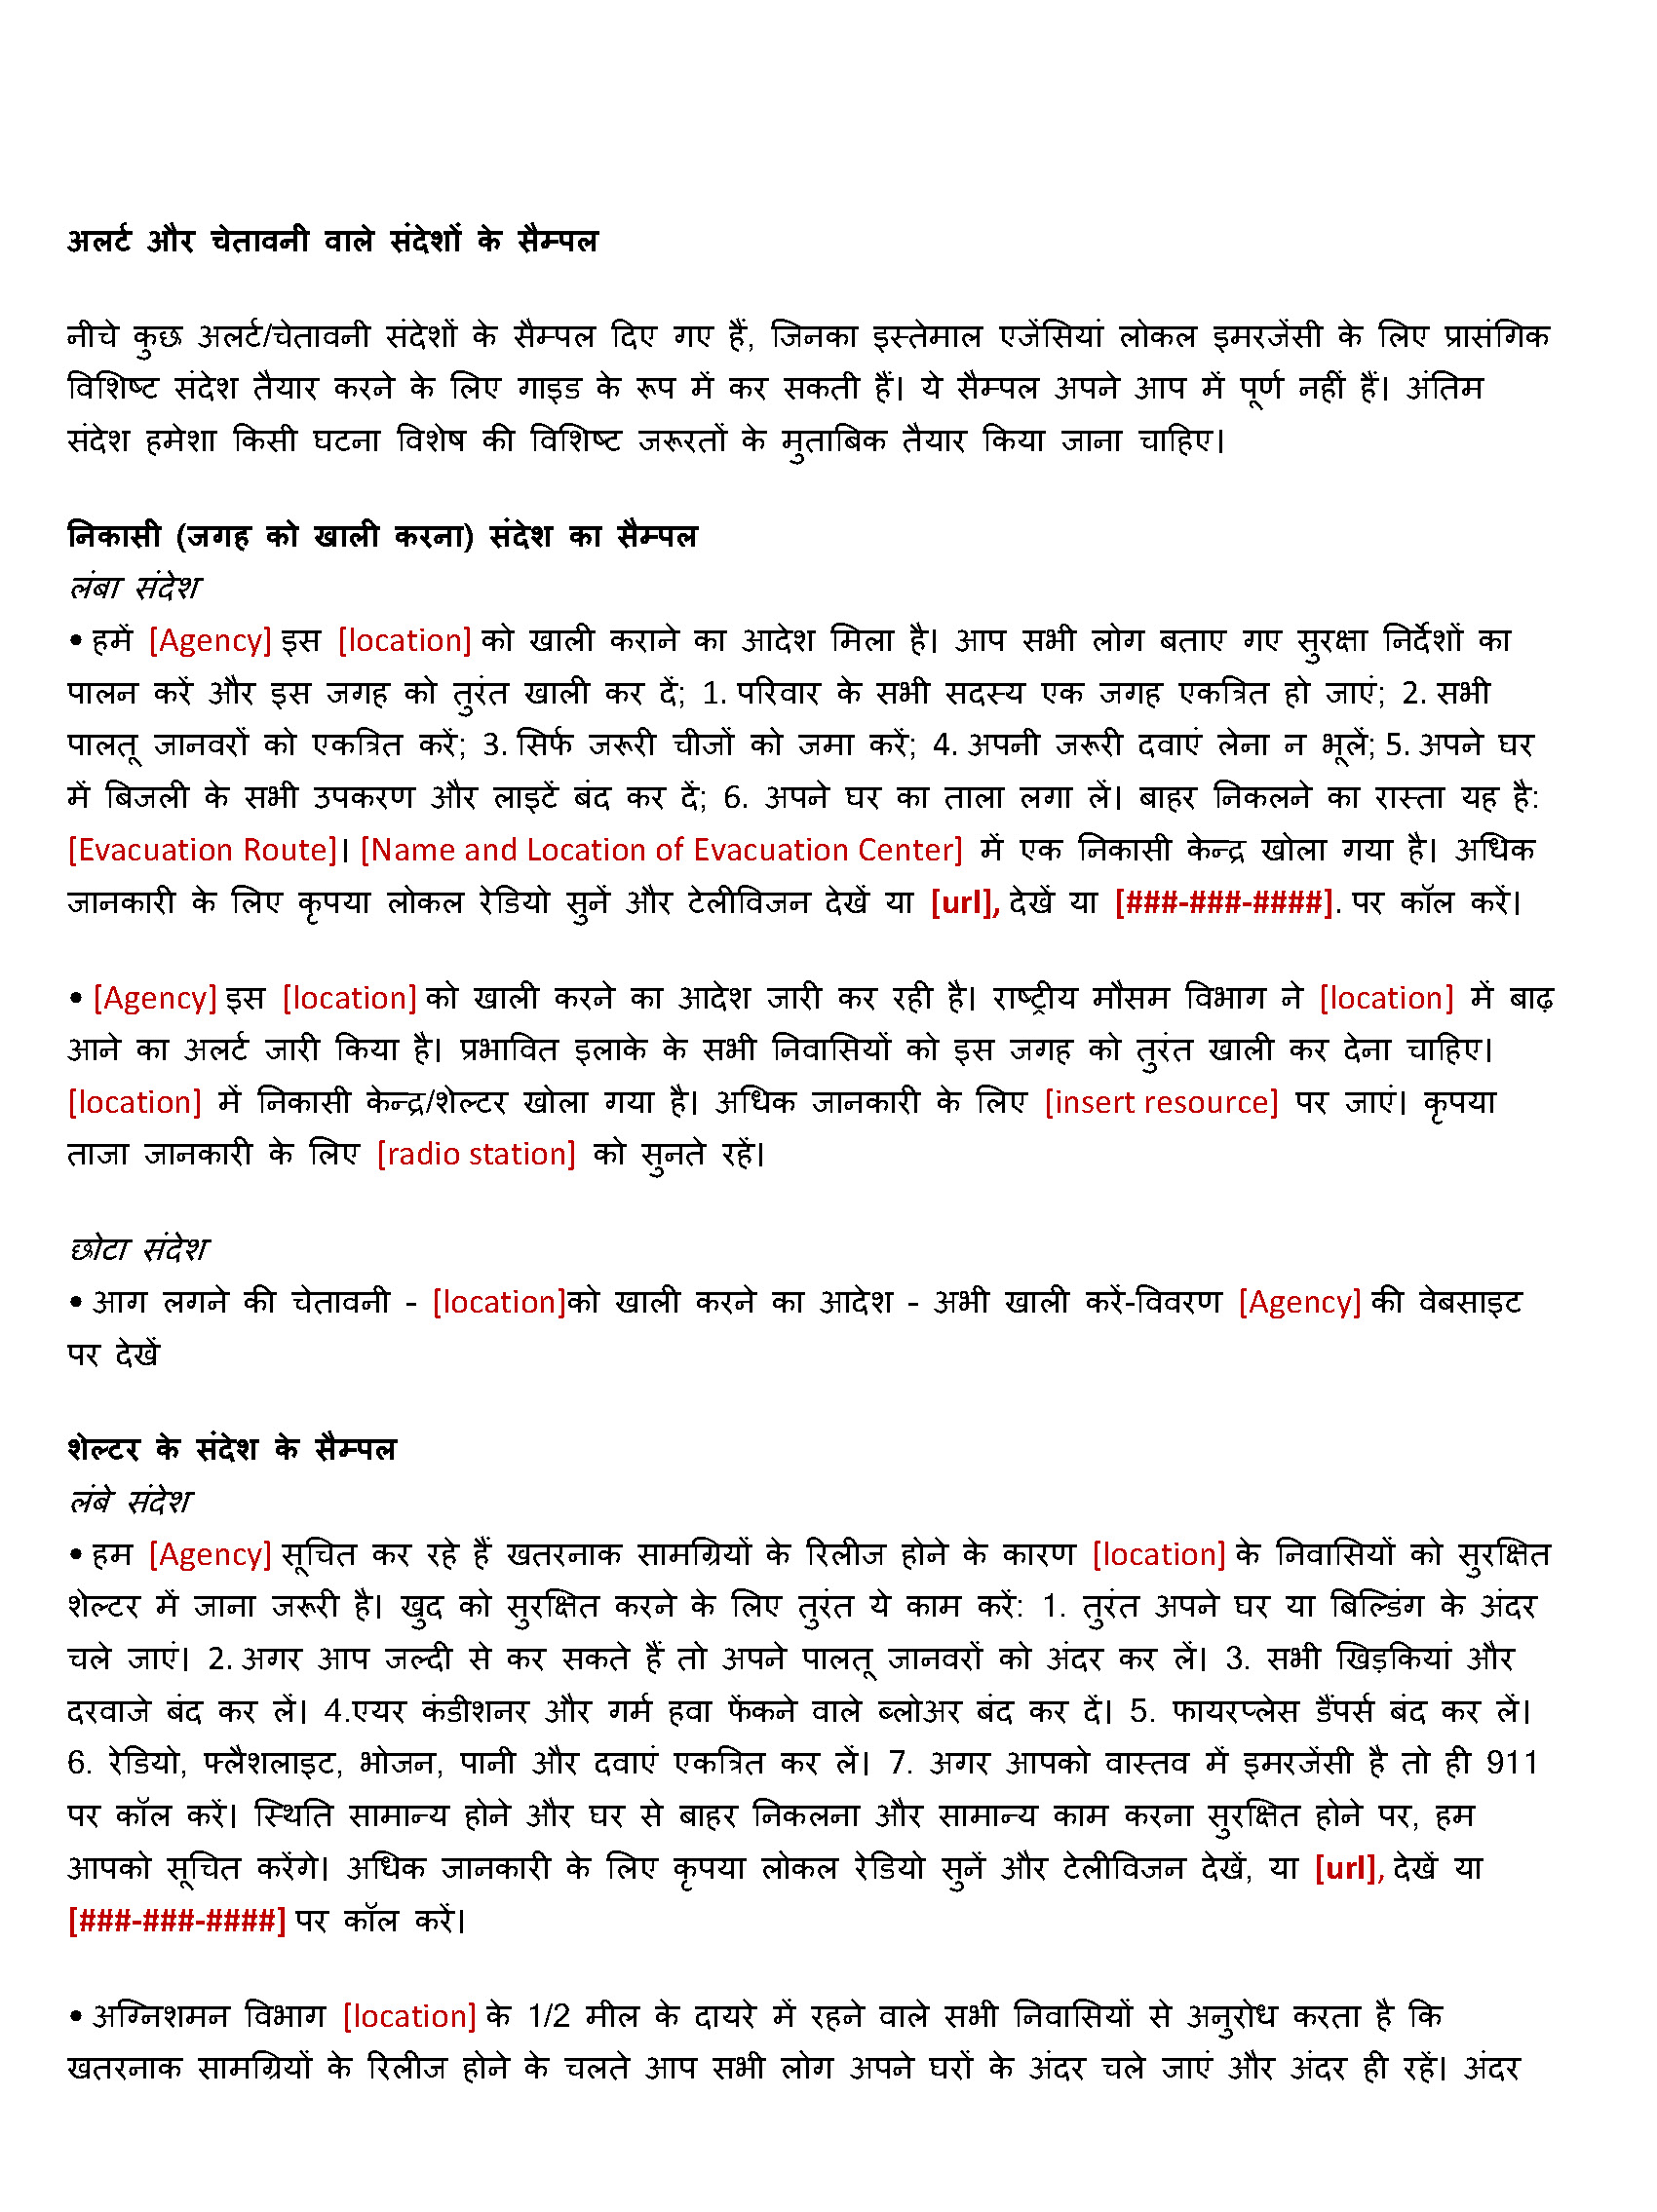 Image of the Sample AW Messages Hindi document